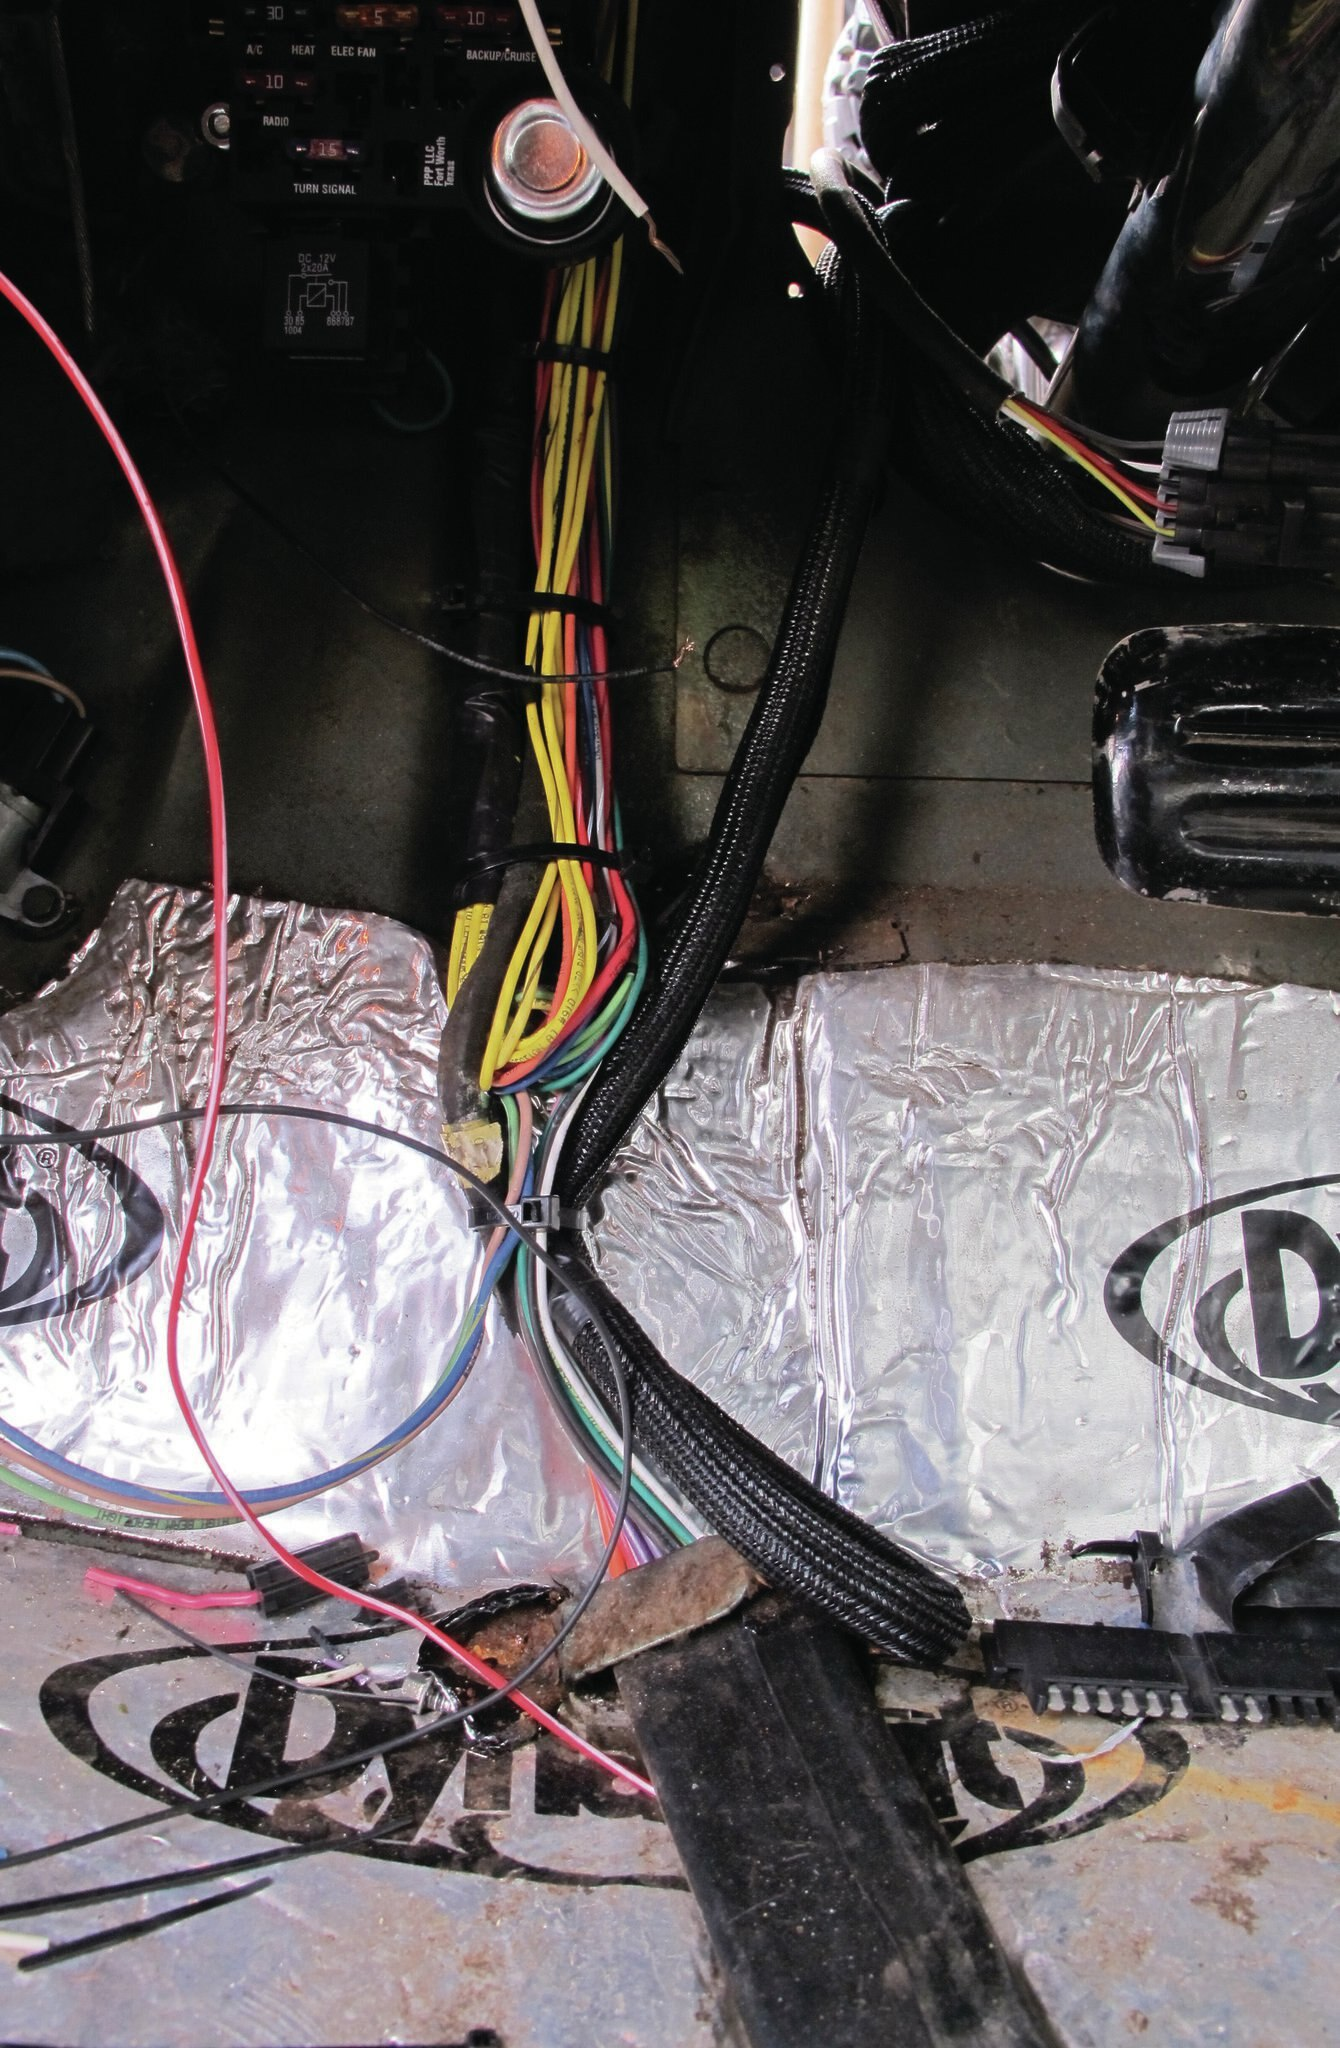 painless wiring kit factory harness protectors 10 painless wiring kit a very \